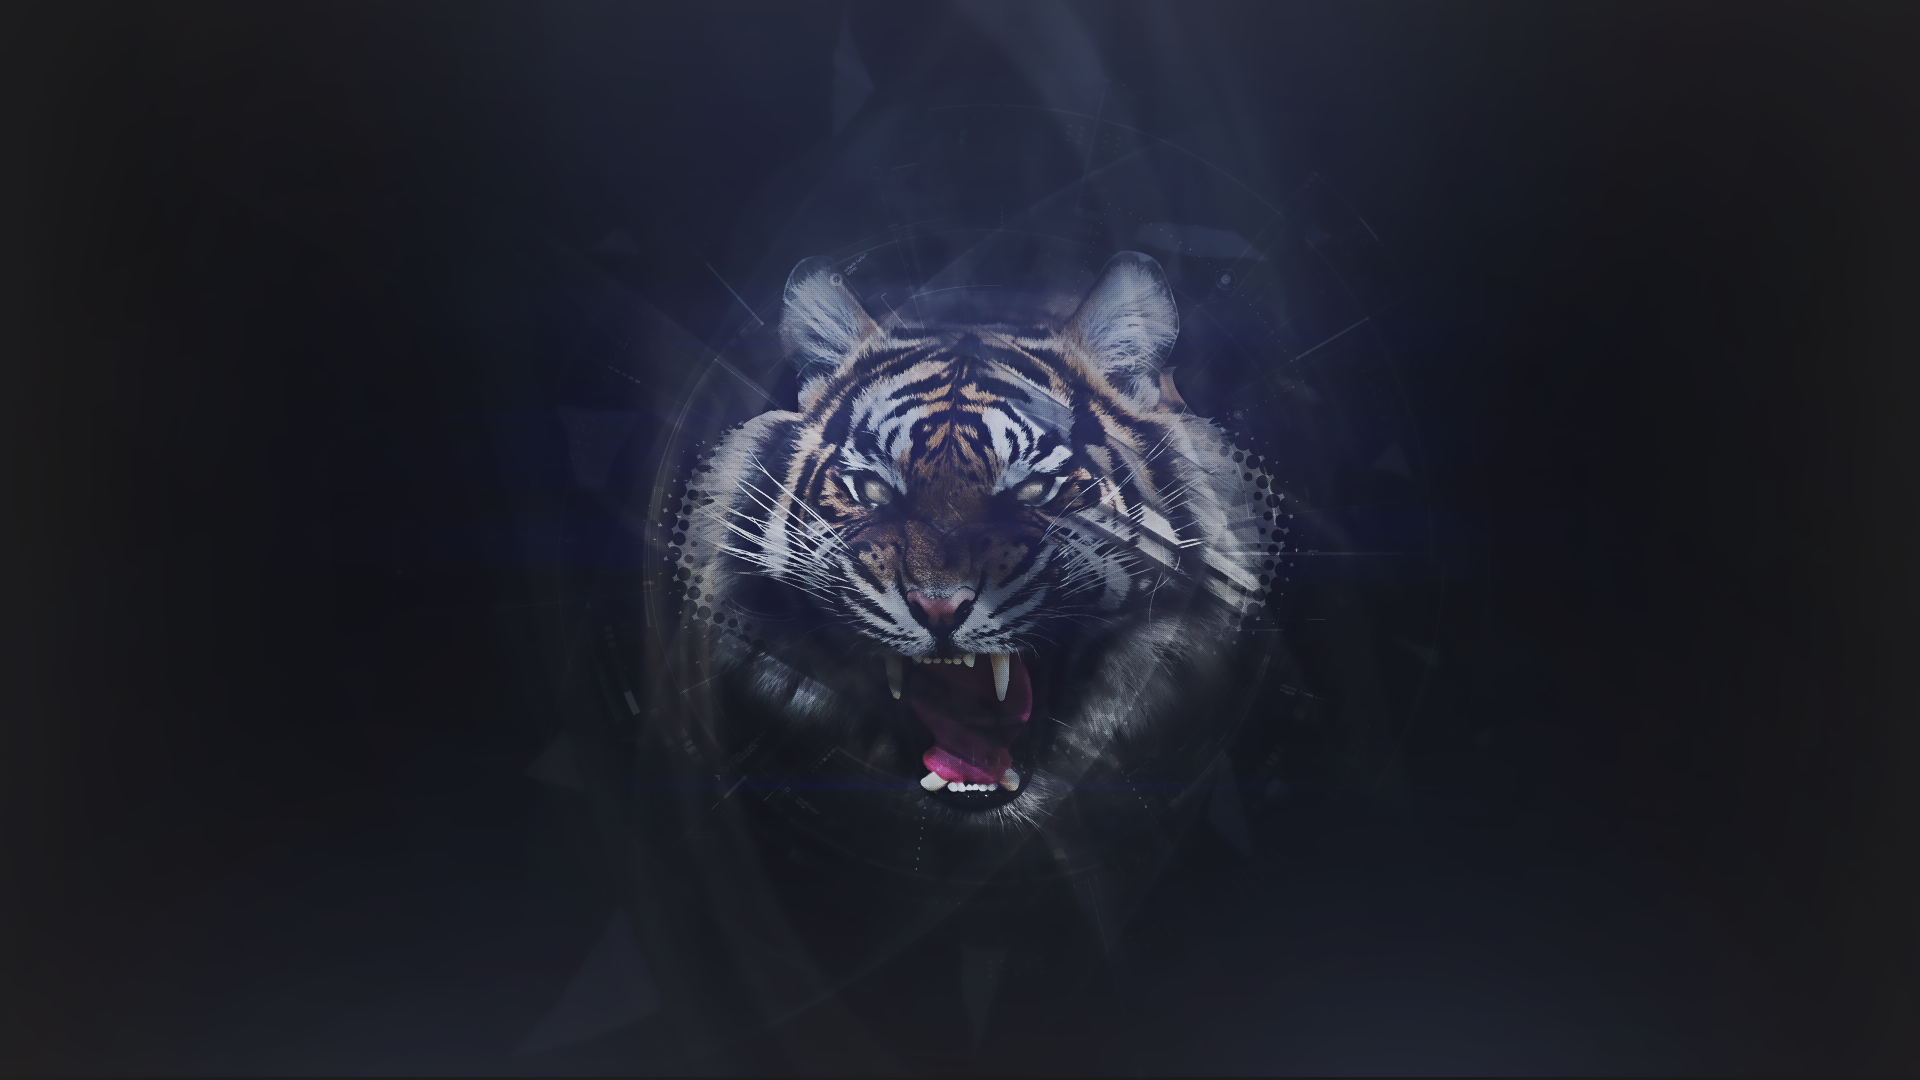 Abstract tiger wallpaper by zeracreations on deviantart abstract tiger wallpaper by zeracreations abstract tiger wallpaper by zeracreations altavistaventures Choice Image